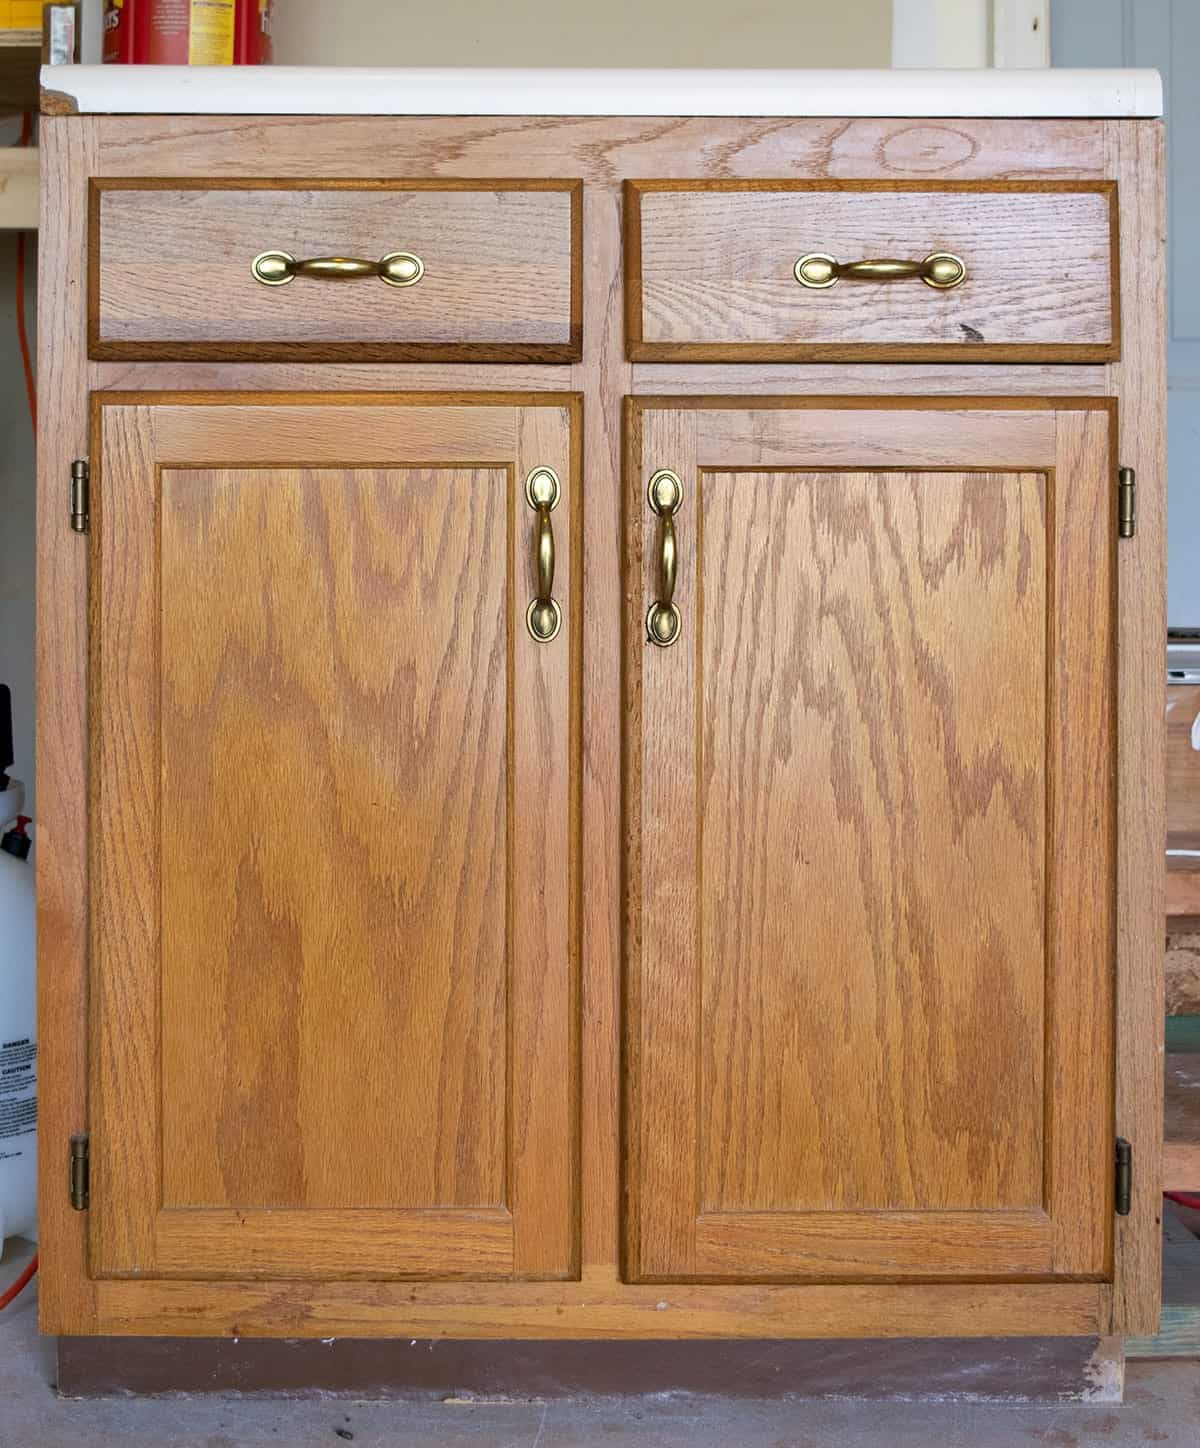 Old oak wood kitchen cabinet section with brass hardware with coffee canister on top.